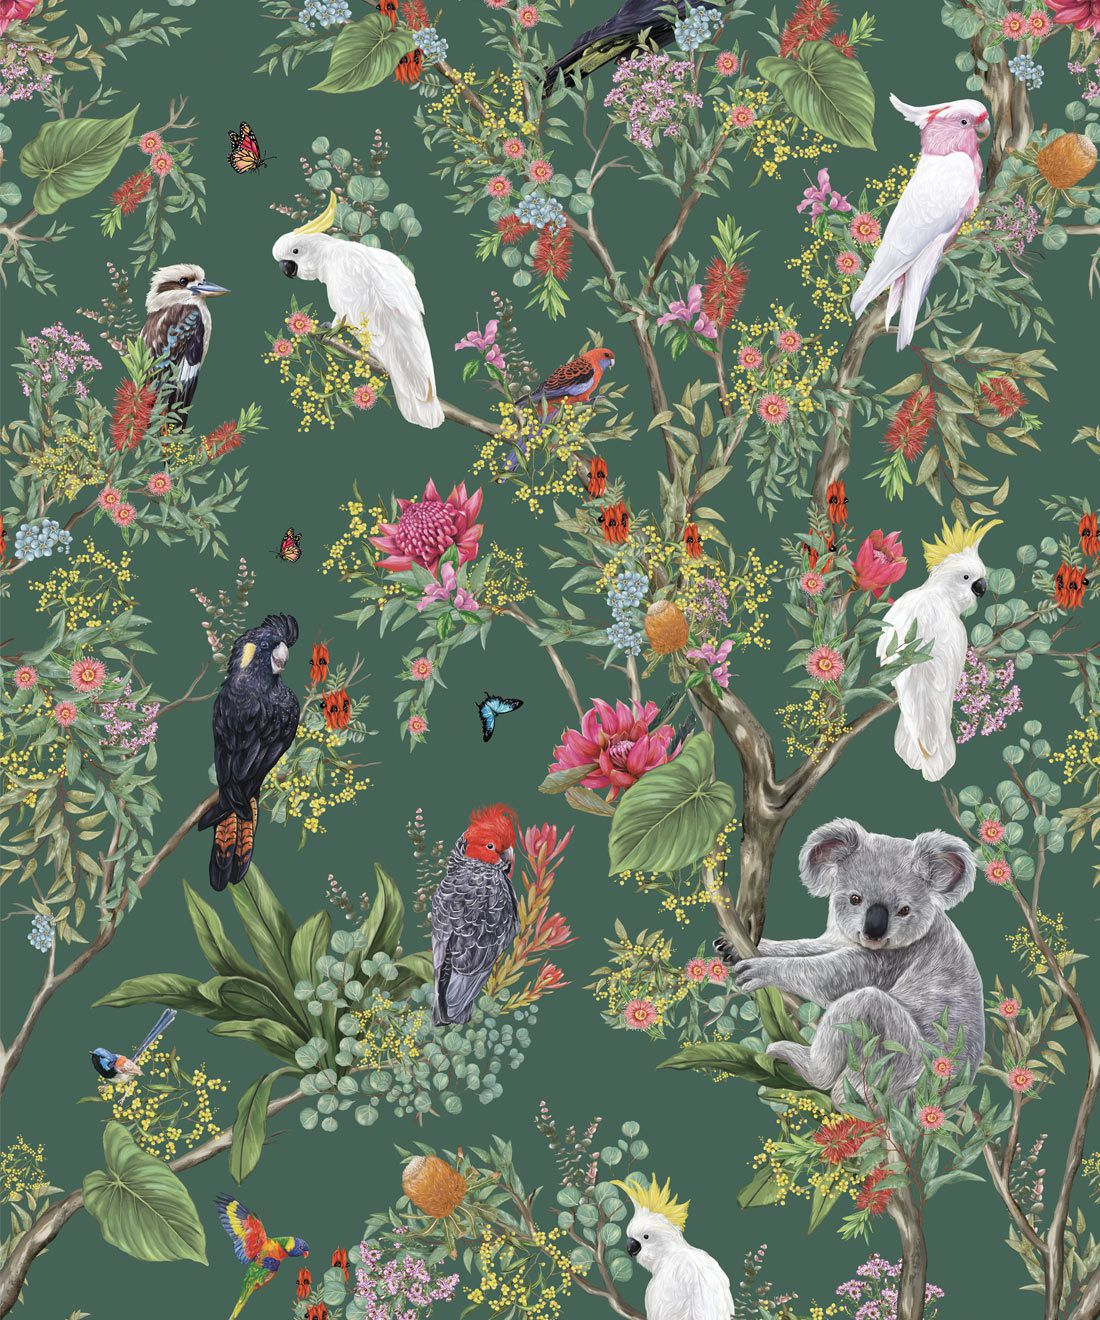 Australia Wallpaper • Cockatoos, Koalas, Parrots, Finches • Milton & King Europe • Green Wallpaper Swatch